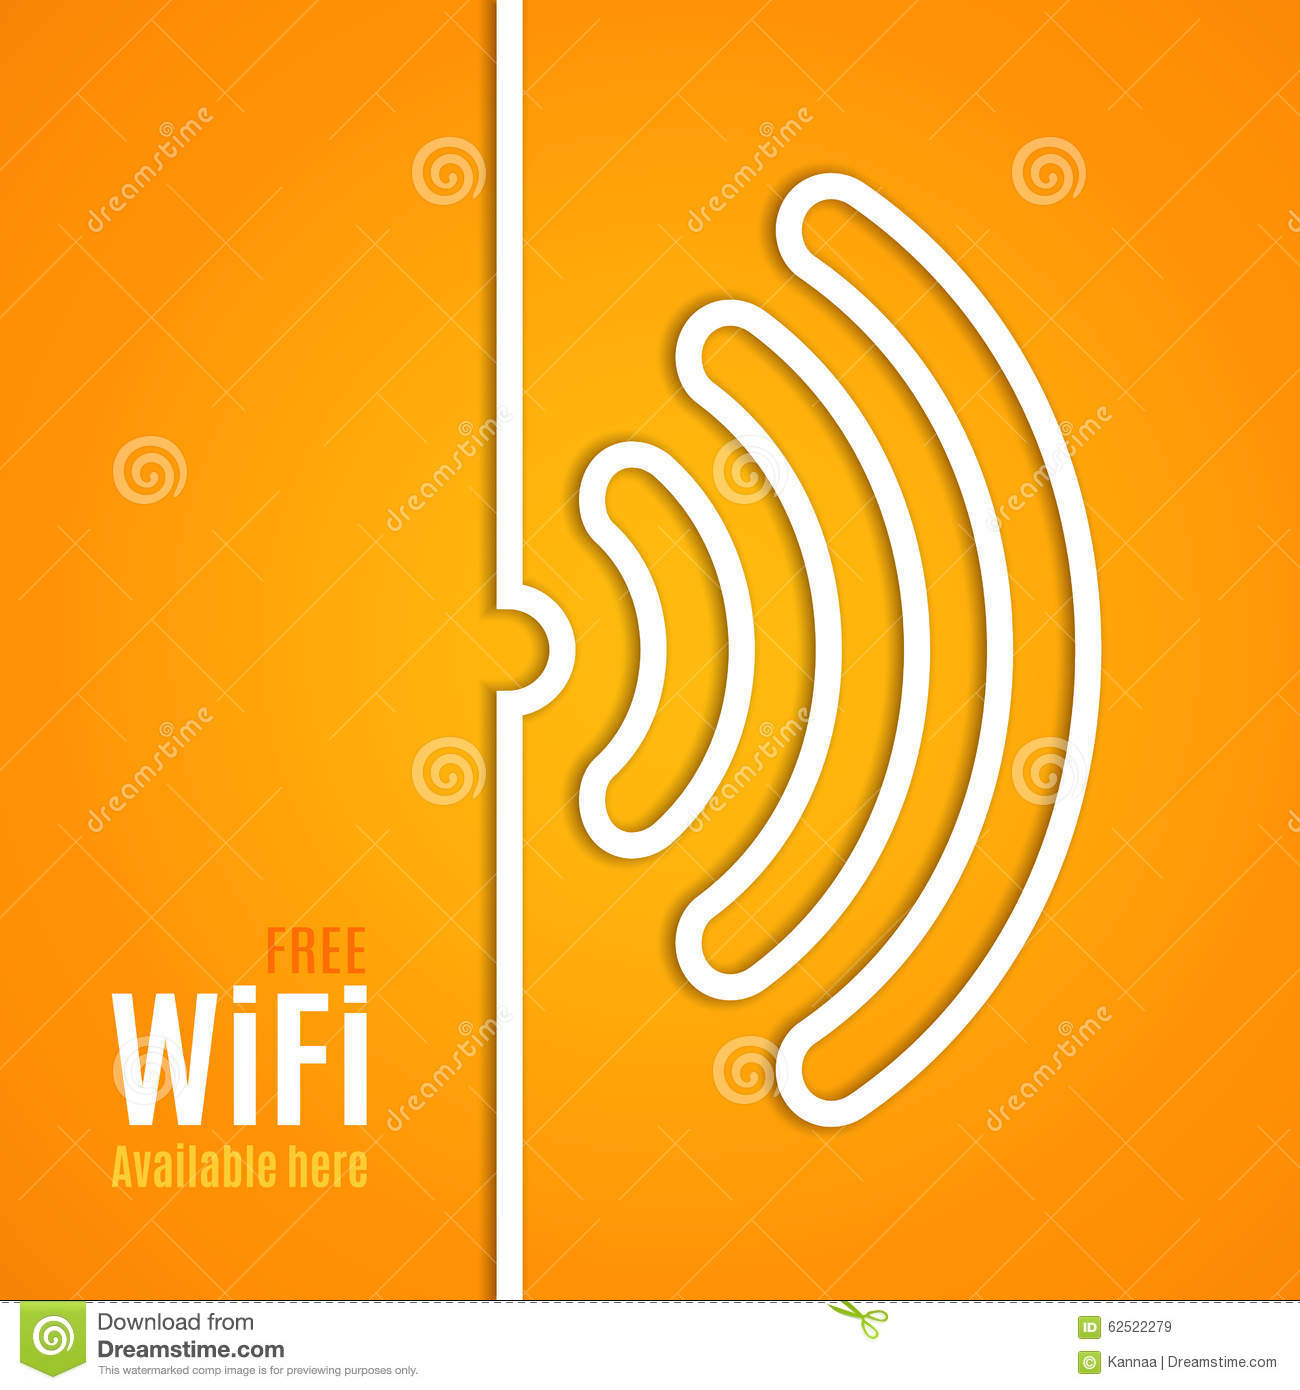 thesis on wlan The goal of this project is to develop software that can automatically diagnose/troubleshoot wifi security problems and tell normal in this thesis, you will.